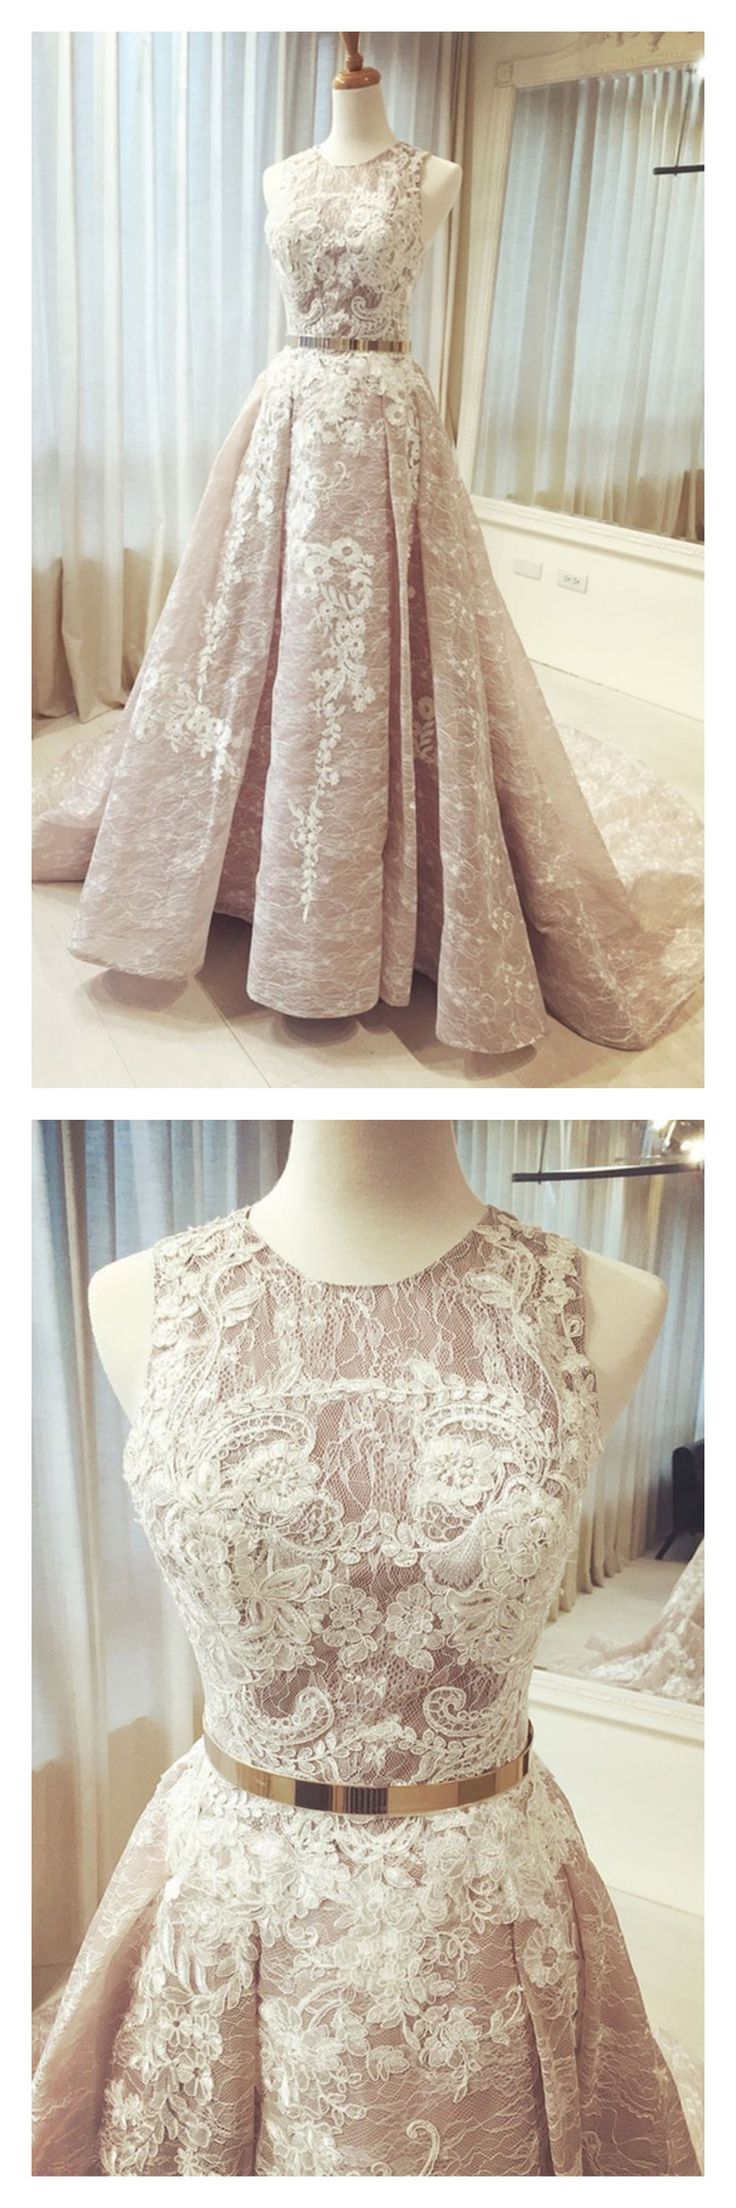 prom dresses 2018, prom dresses 2017, prom dresses long, prom dresses long cheap simple, prom dresses for teen, prom dresses for freshman, prom dresses for juniors, evening gowns ,prom dresses long sparkly, prom dresses long with lace,#SIMIBridal #promdresses